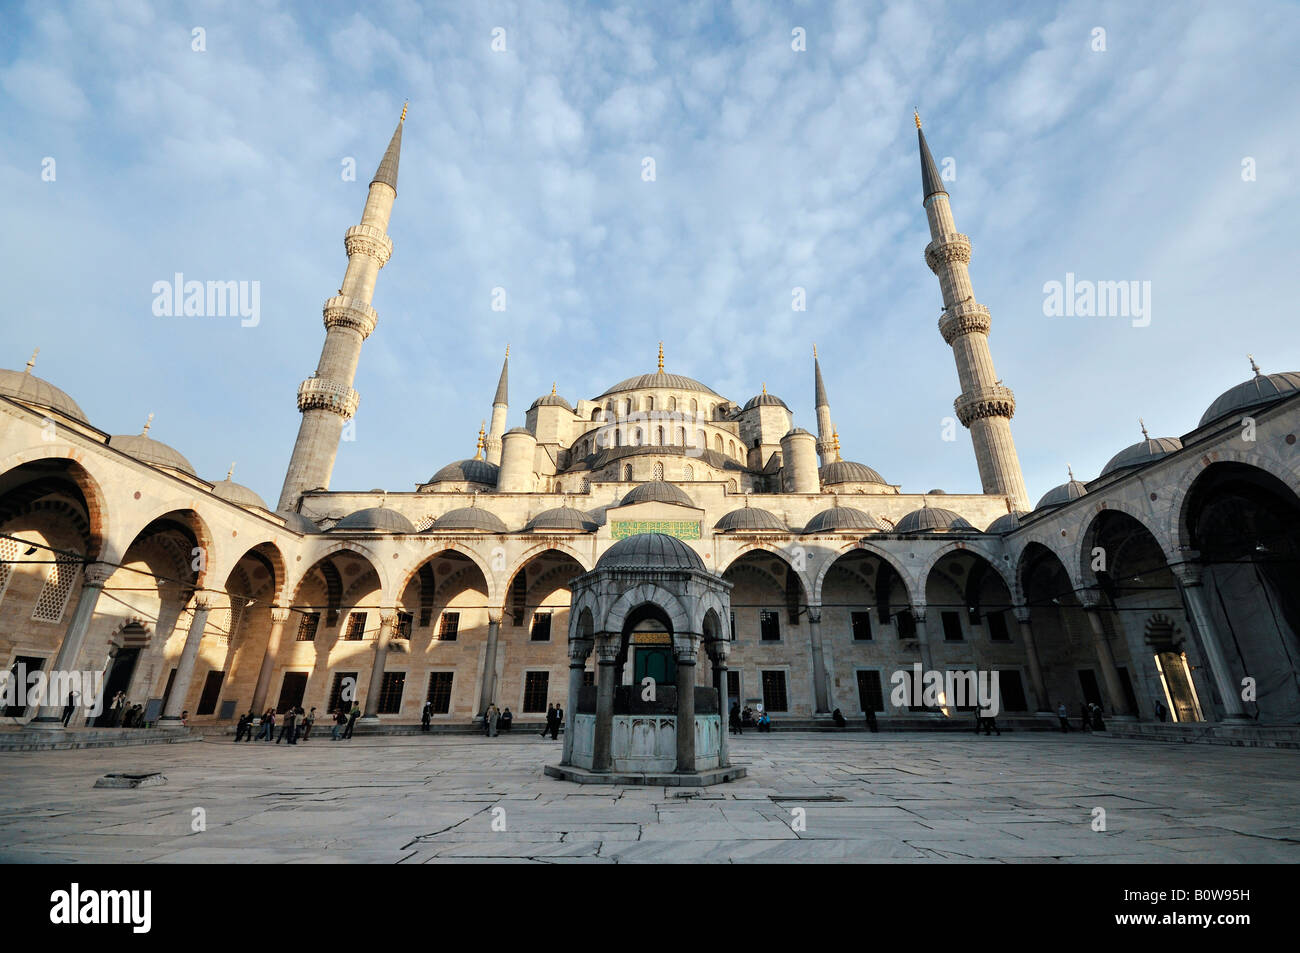 Sultan Ahmed Mosque aka Blue Mosque, Istanbul, Turkey Stock Photo